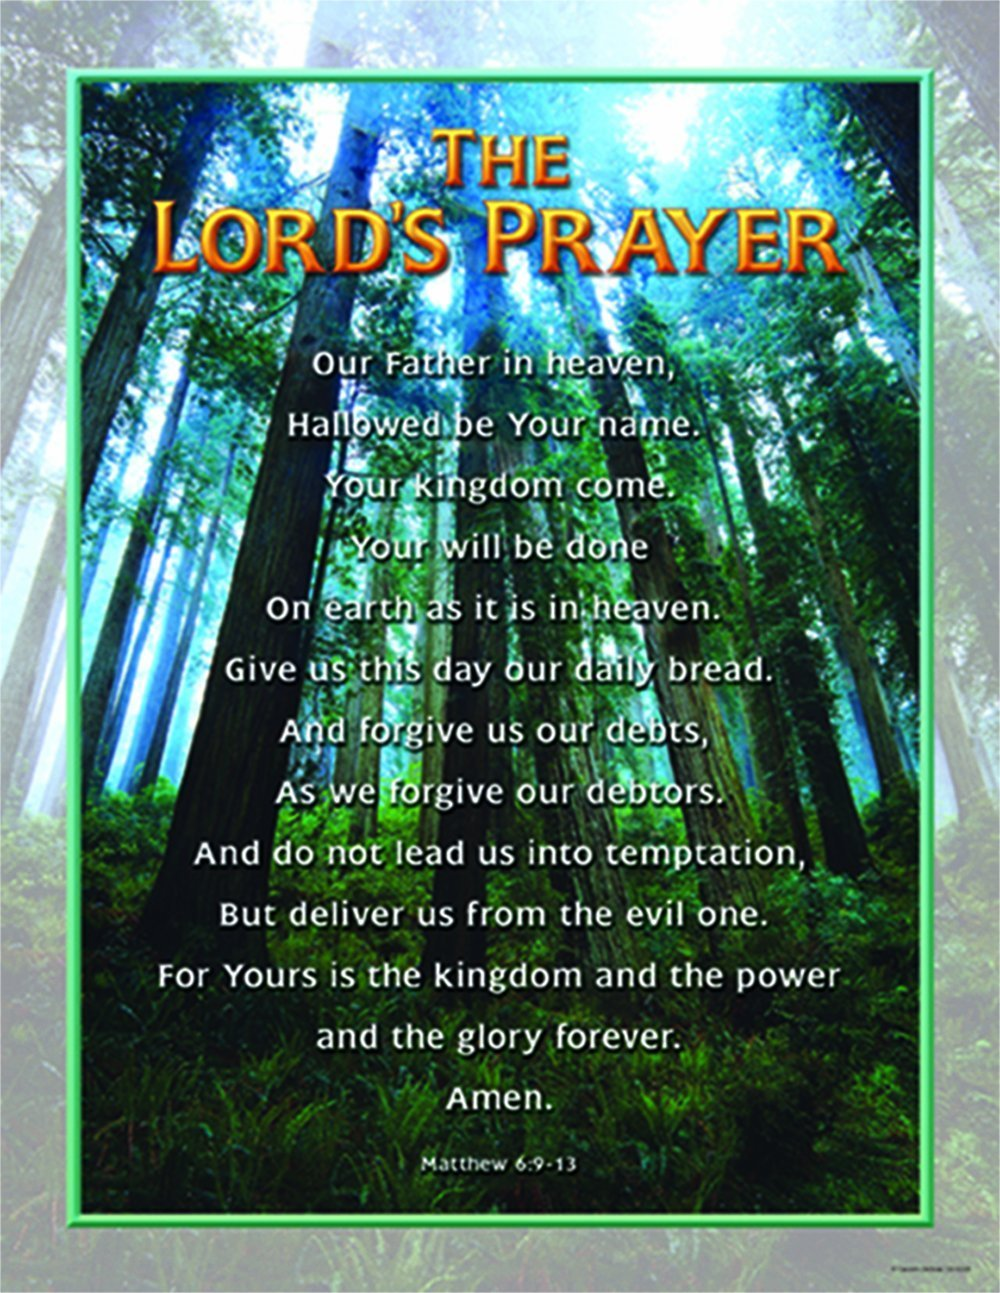 CD 6328 THE LORDS PRAYER POSTER